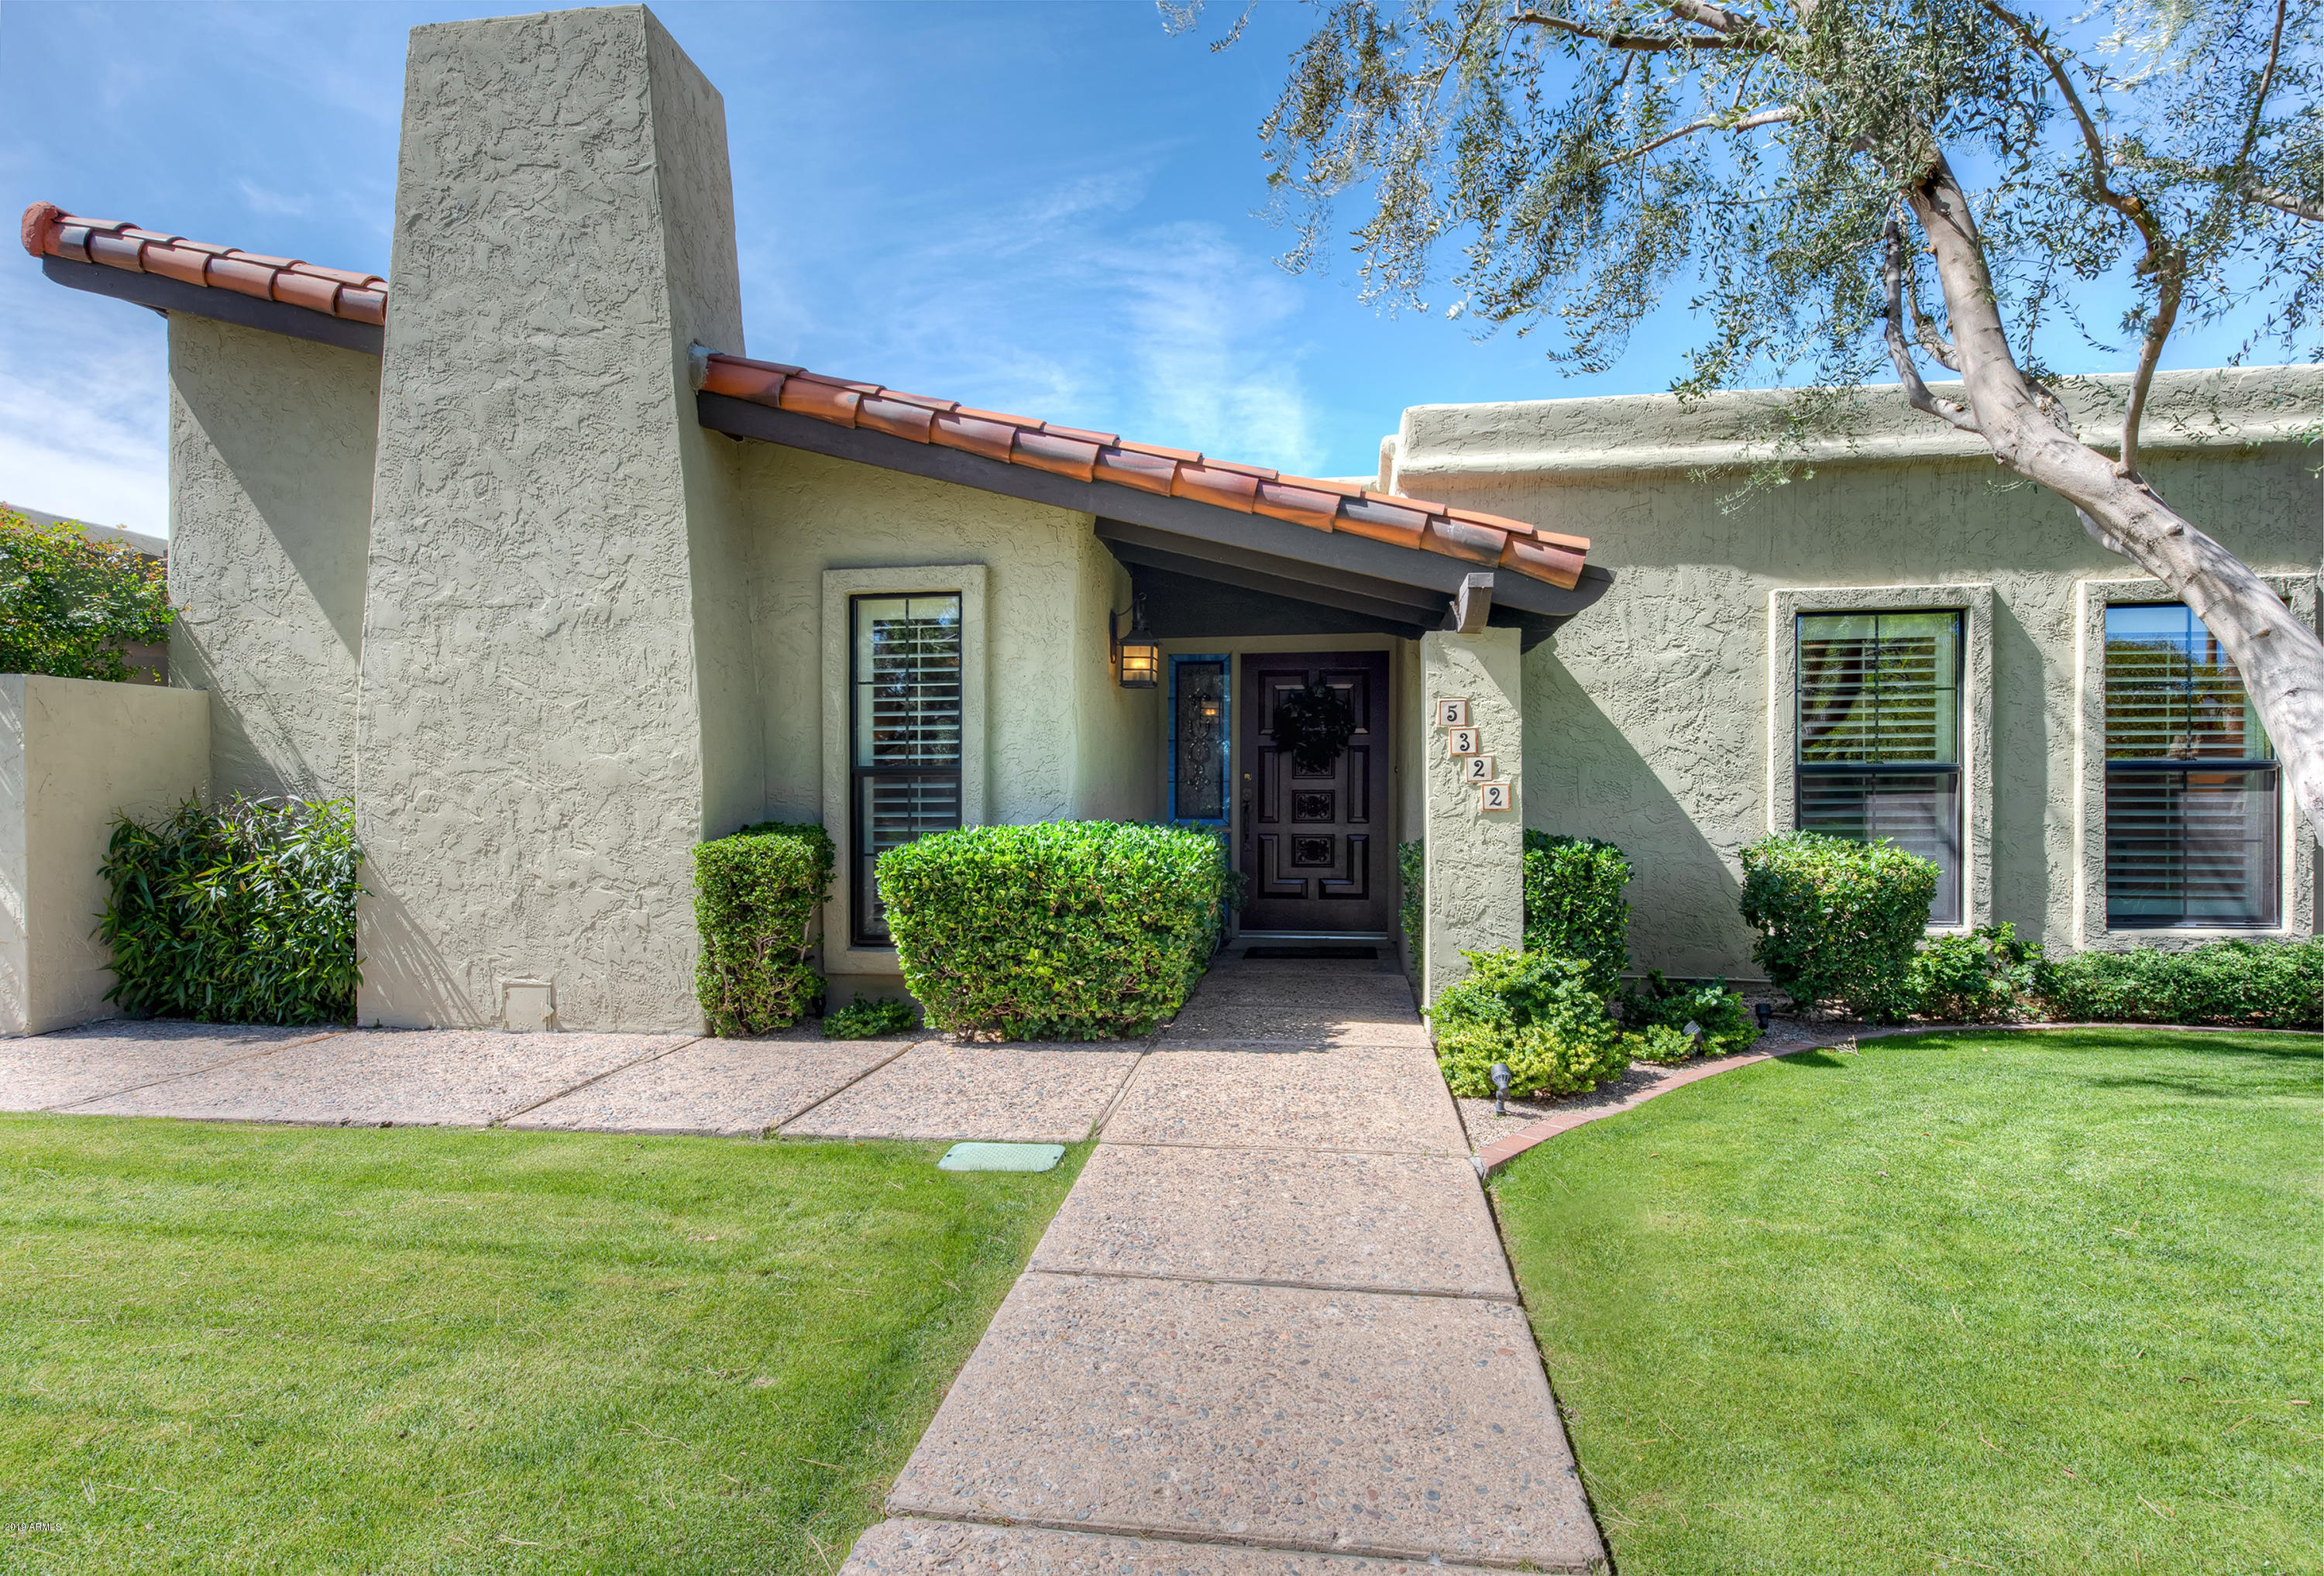 Photo of 5322 N La Plaza Circle, Phoenix, AZ 85012